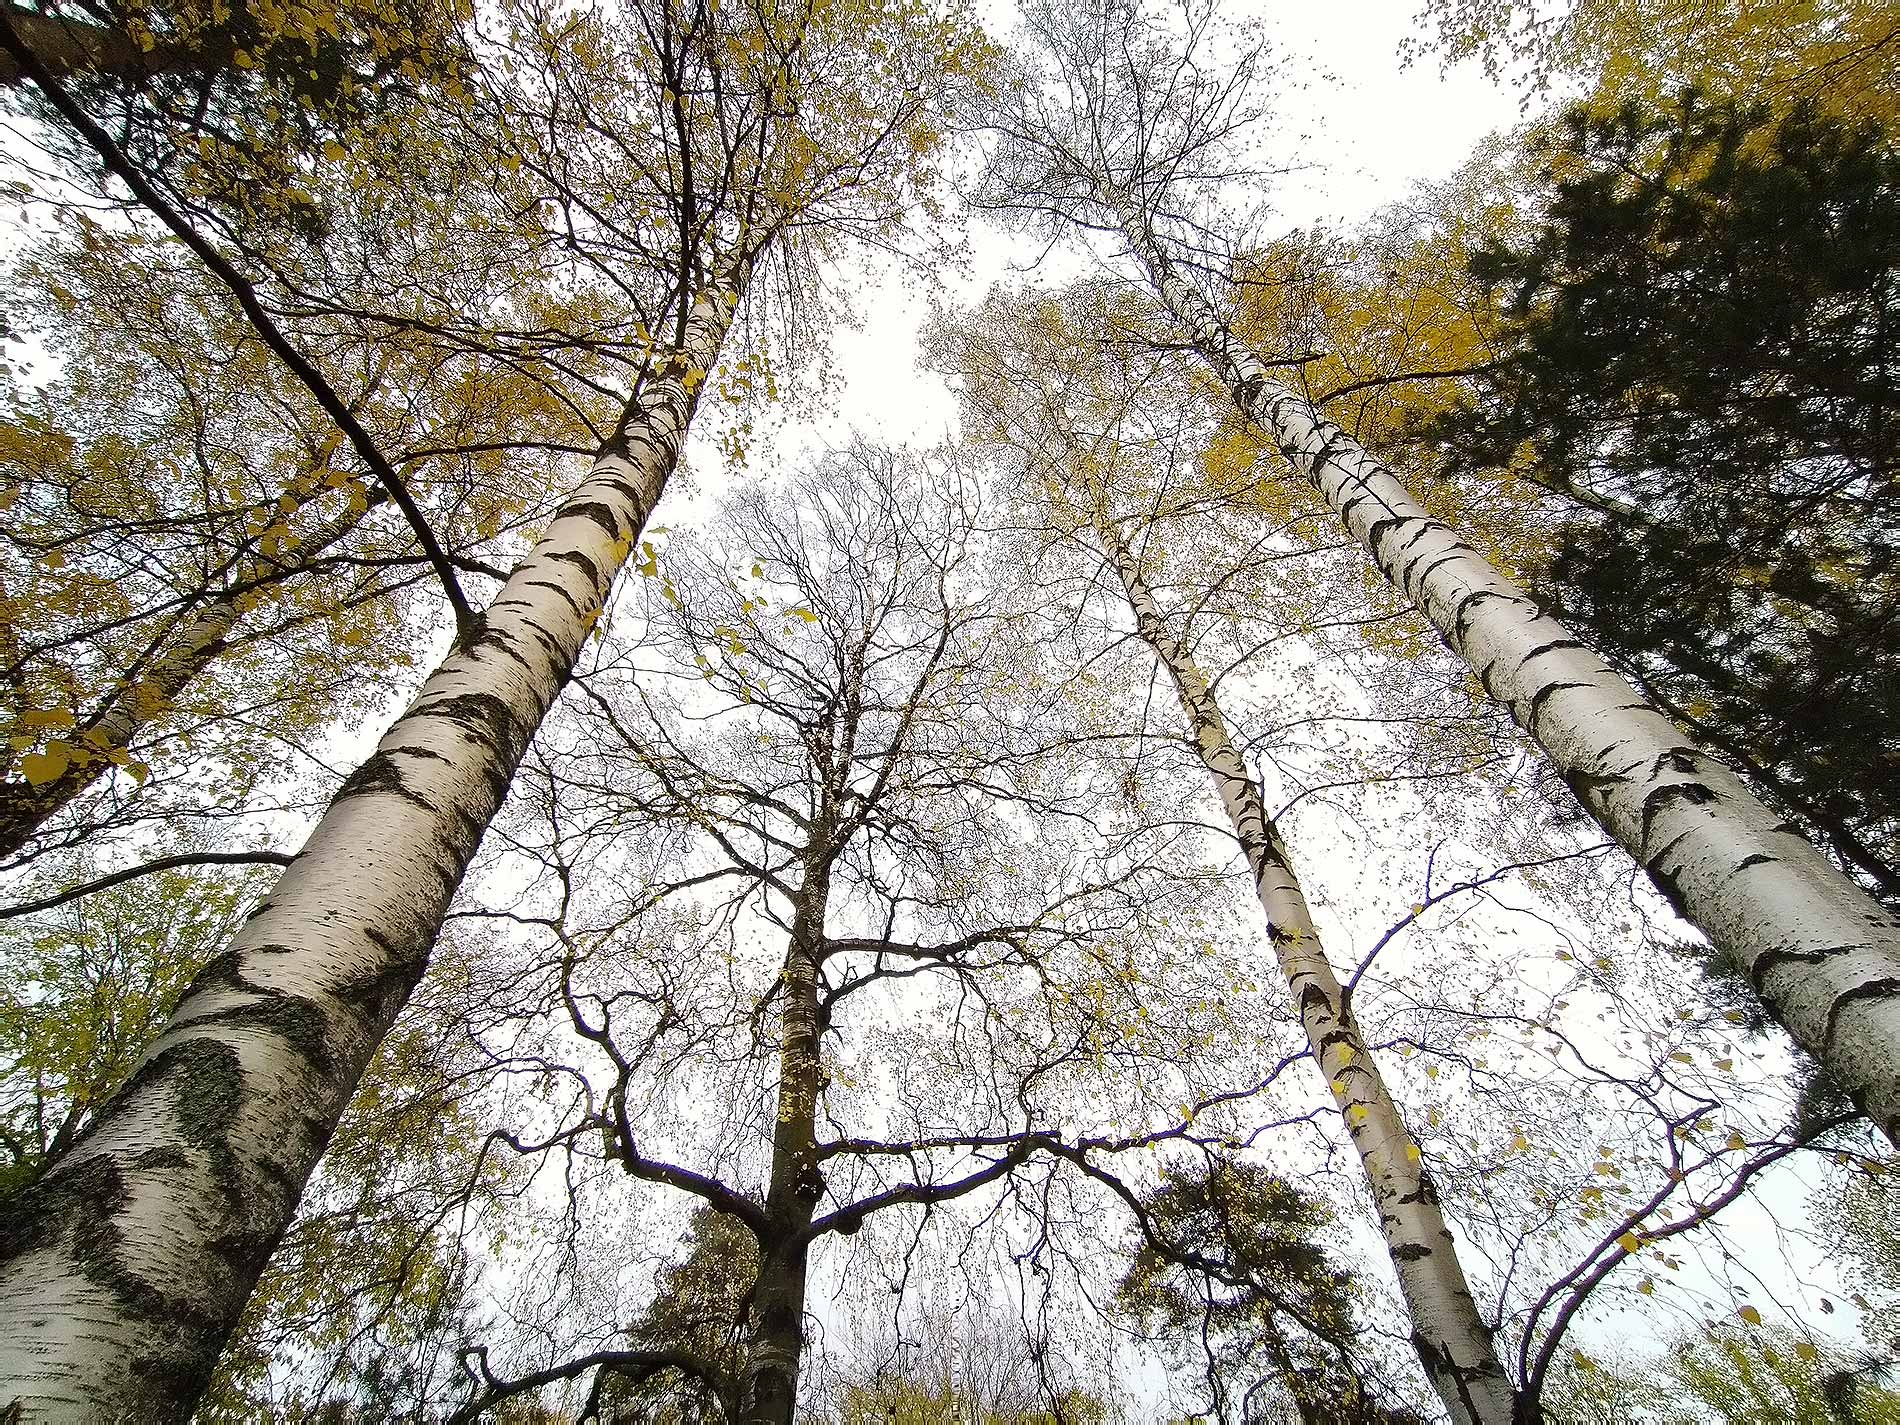 According to an old Finnish story, the birch can be your guide when you are lost. In the modern times it can be drank like coconut water. Photograph: Tony Öhberg/Finland Today